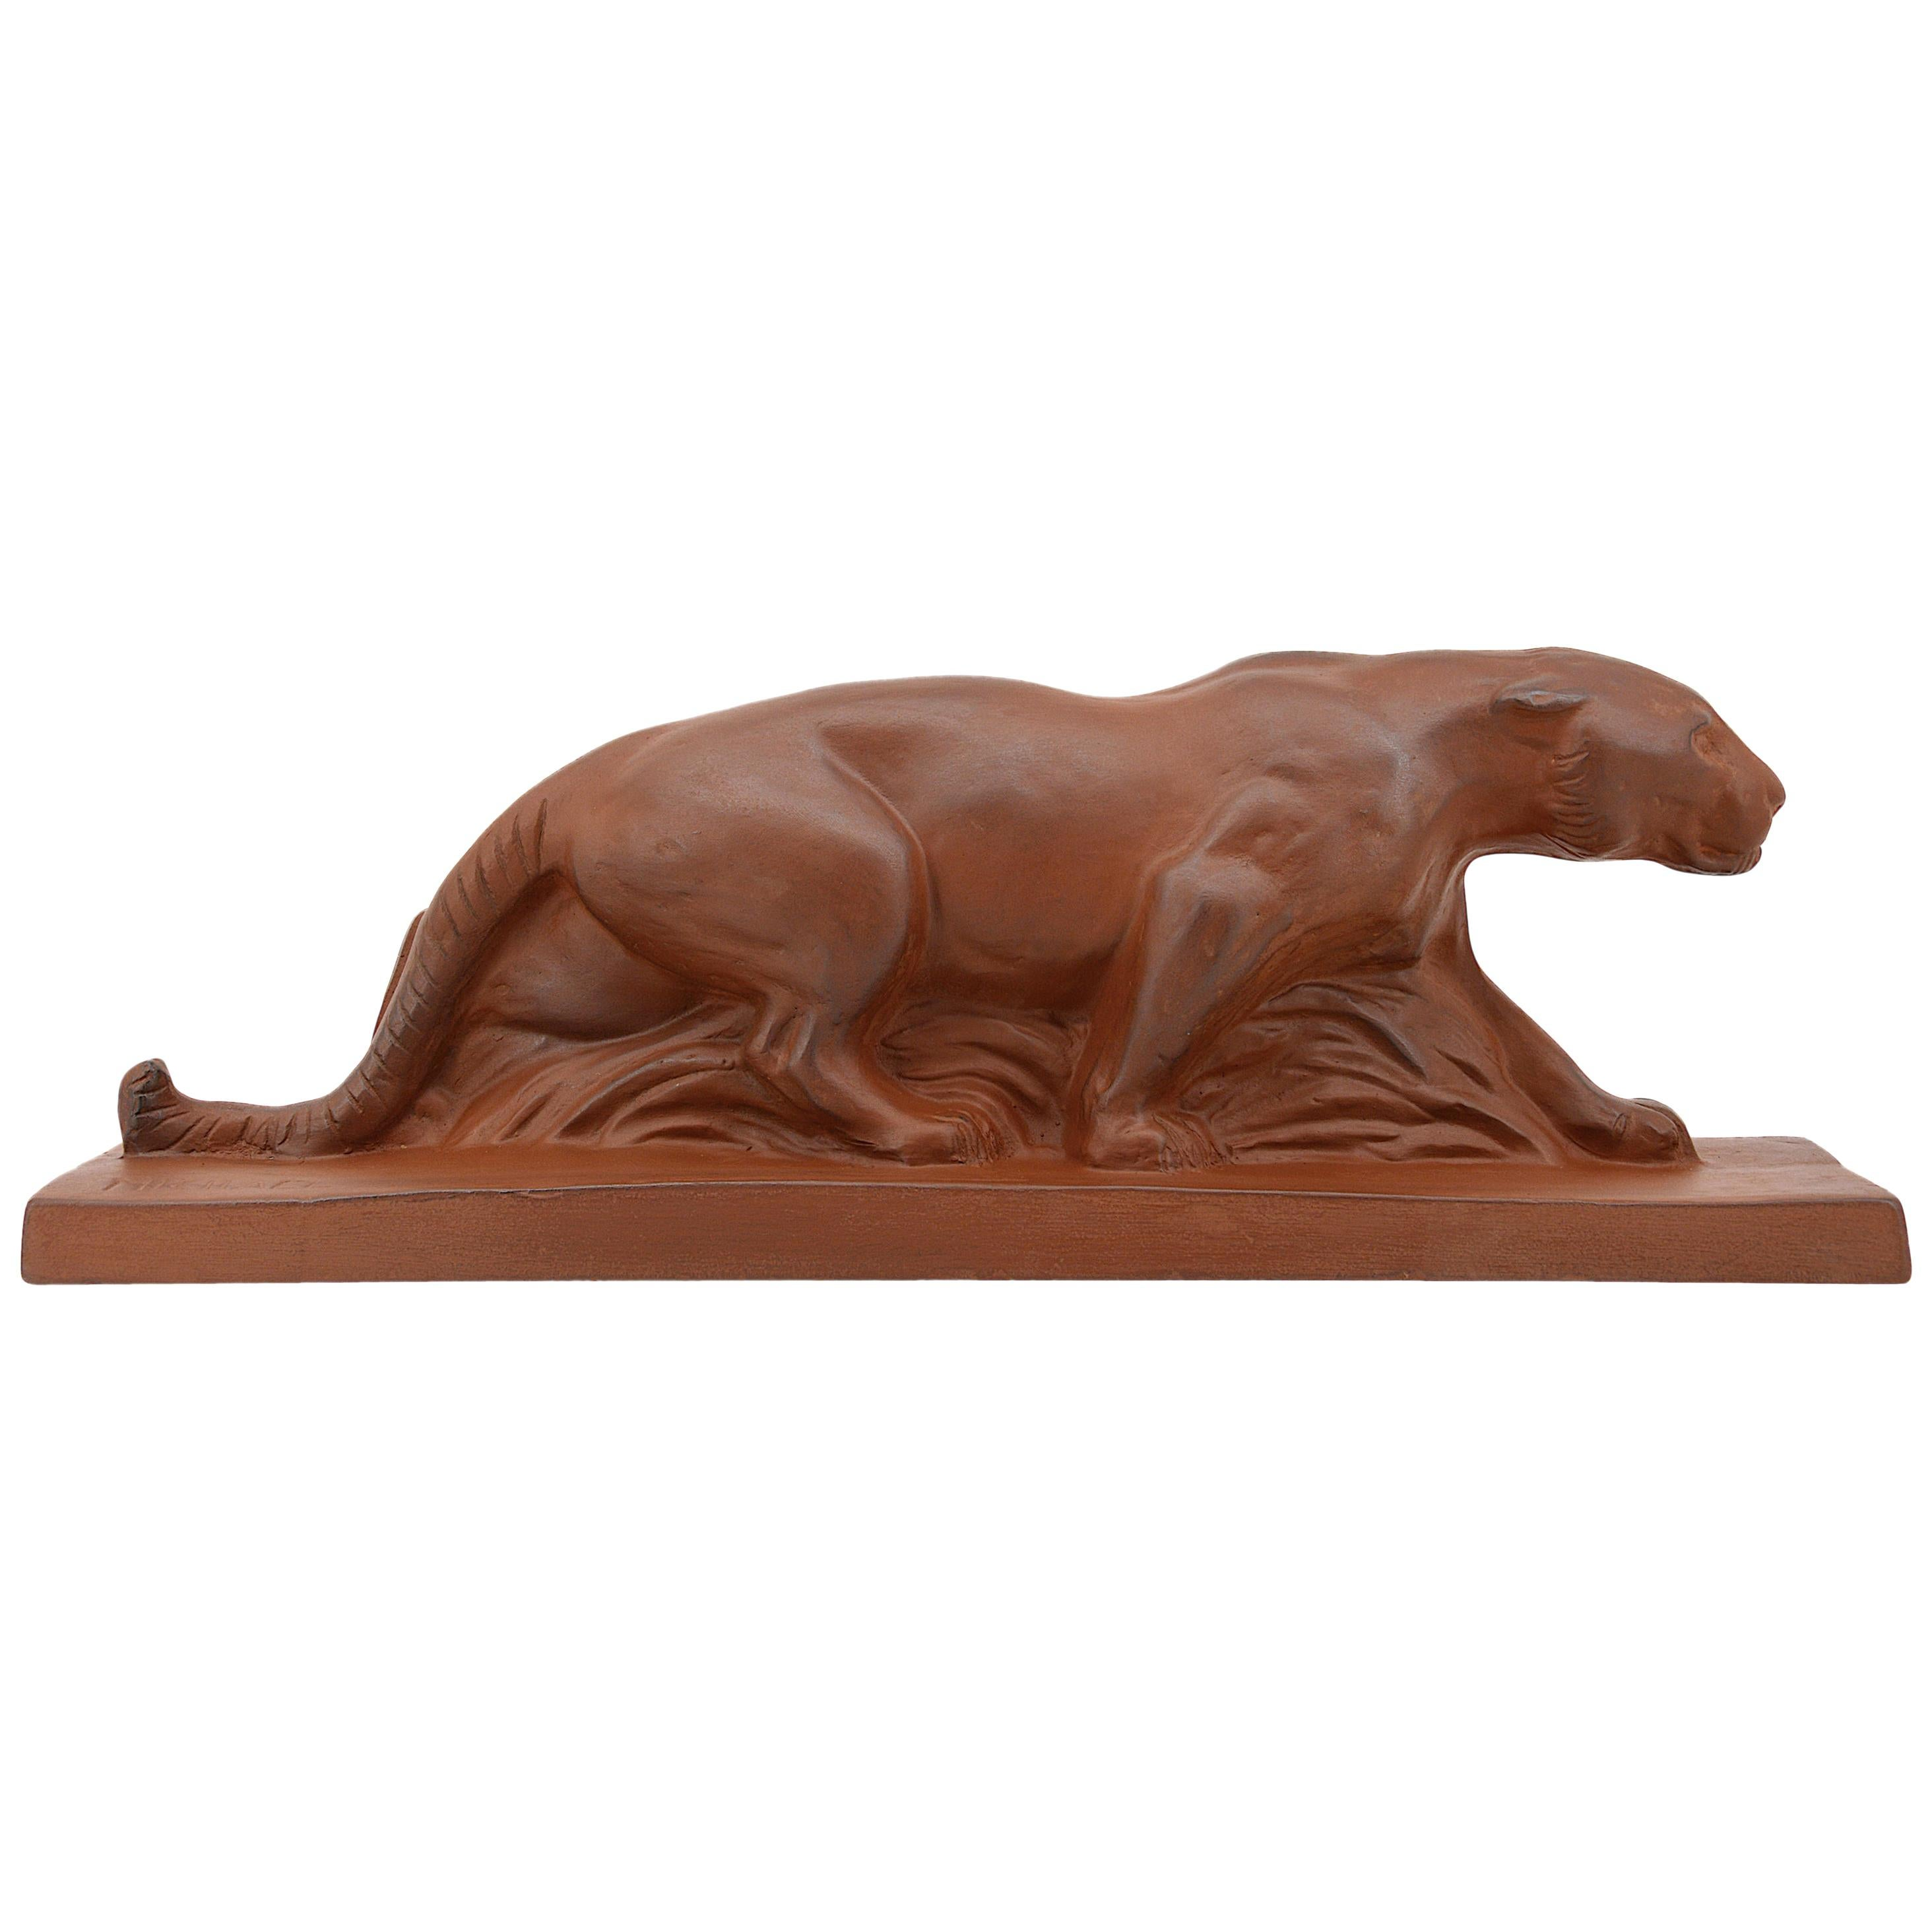 French Art Deco Terracotta Panther Sculpture by Michael, 1930s